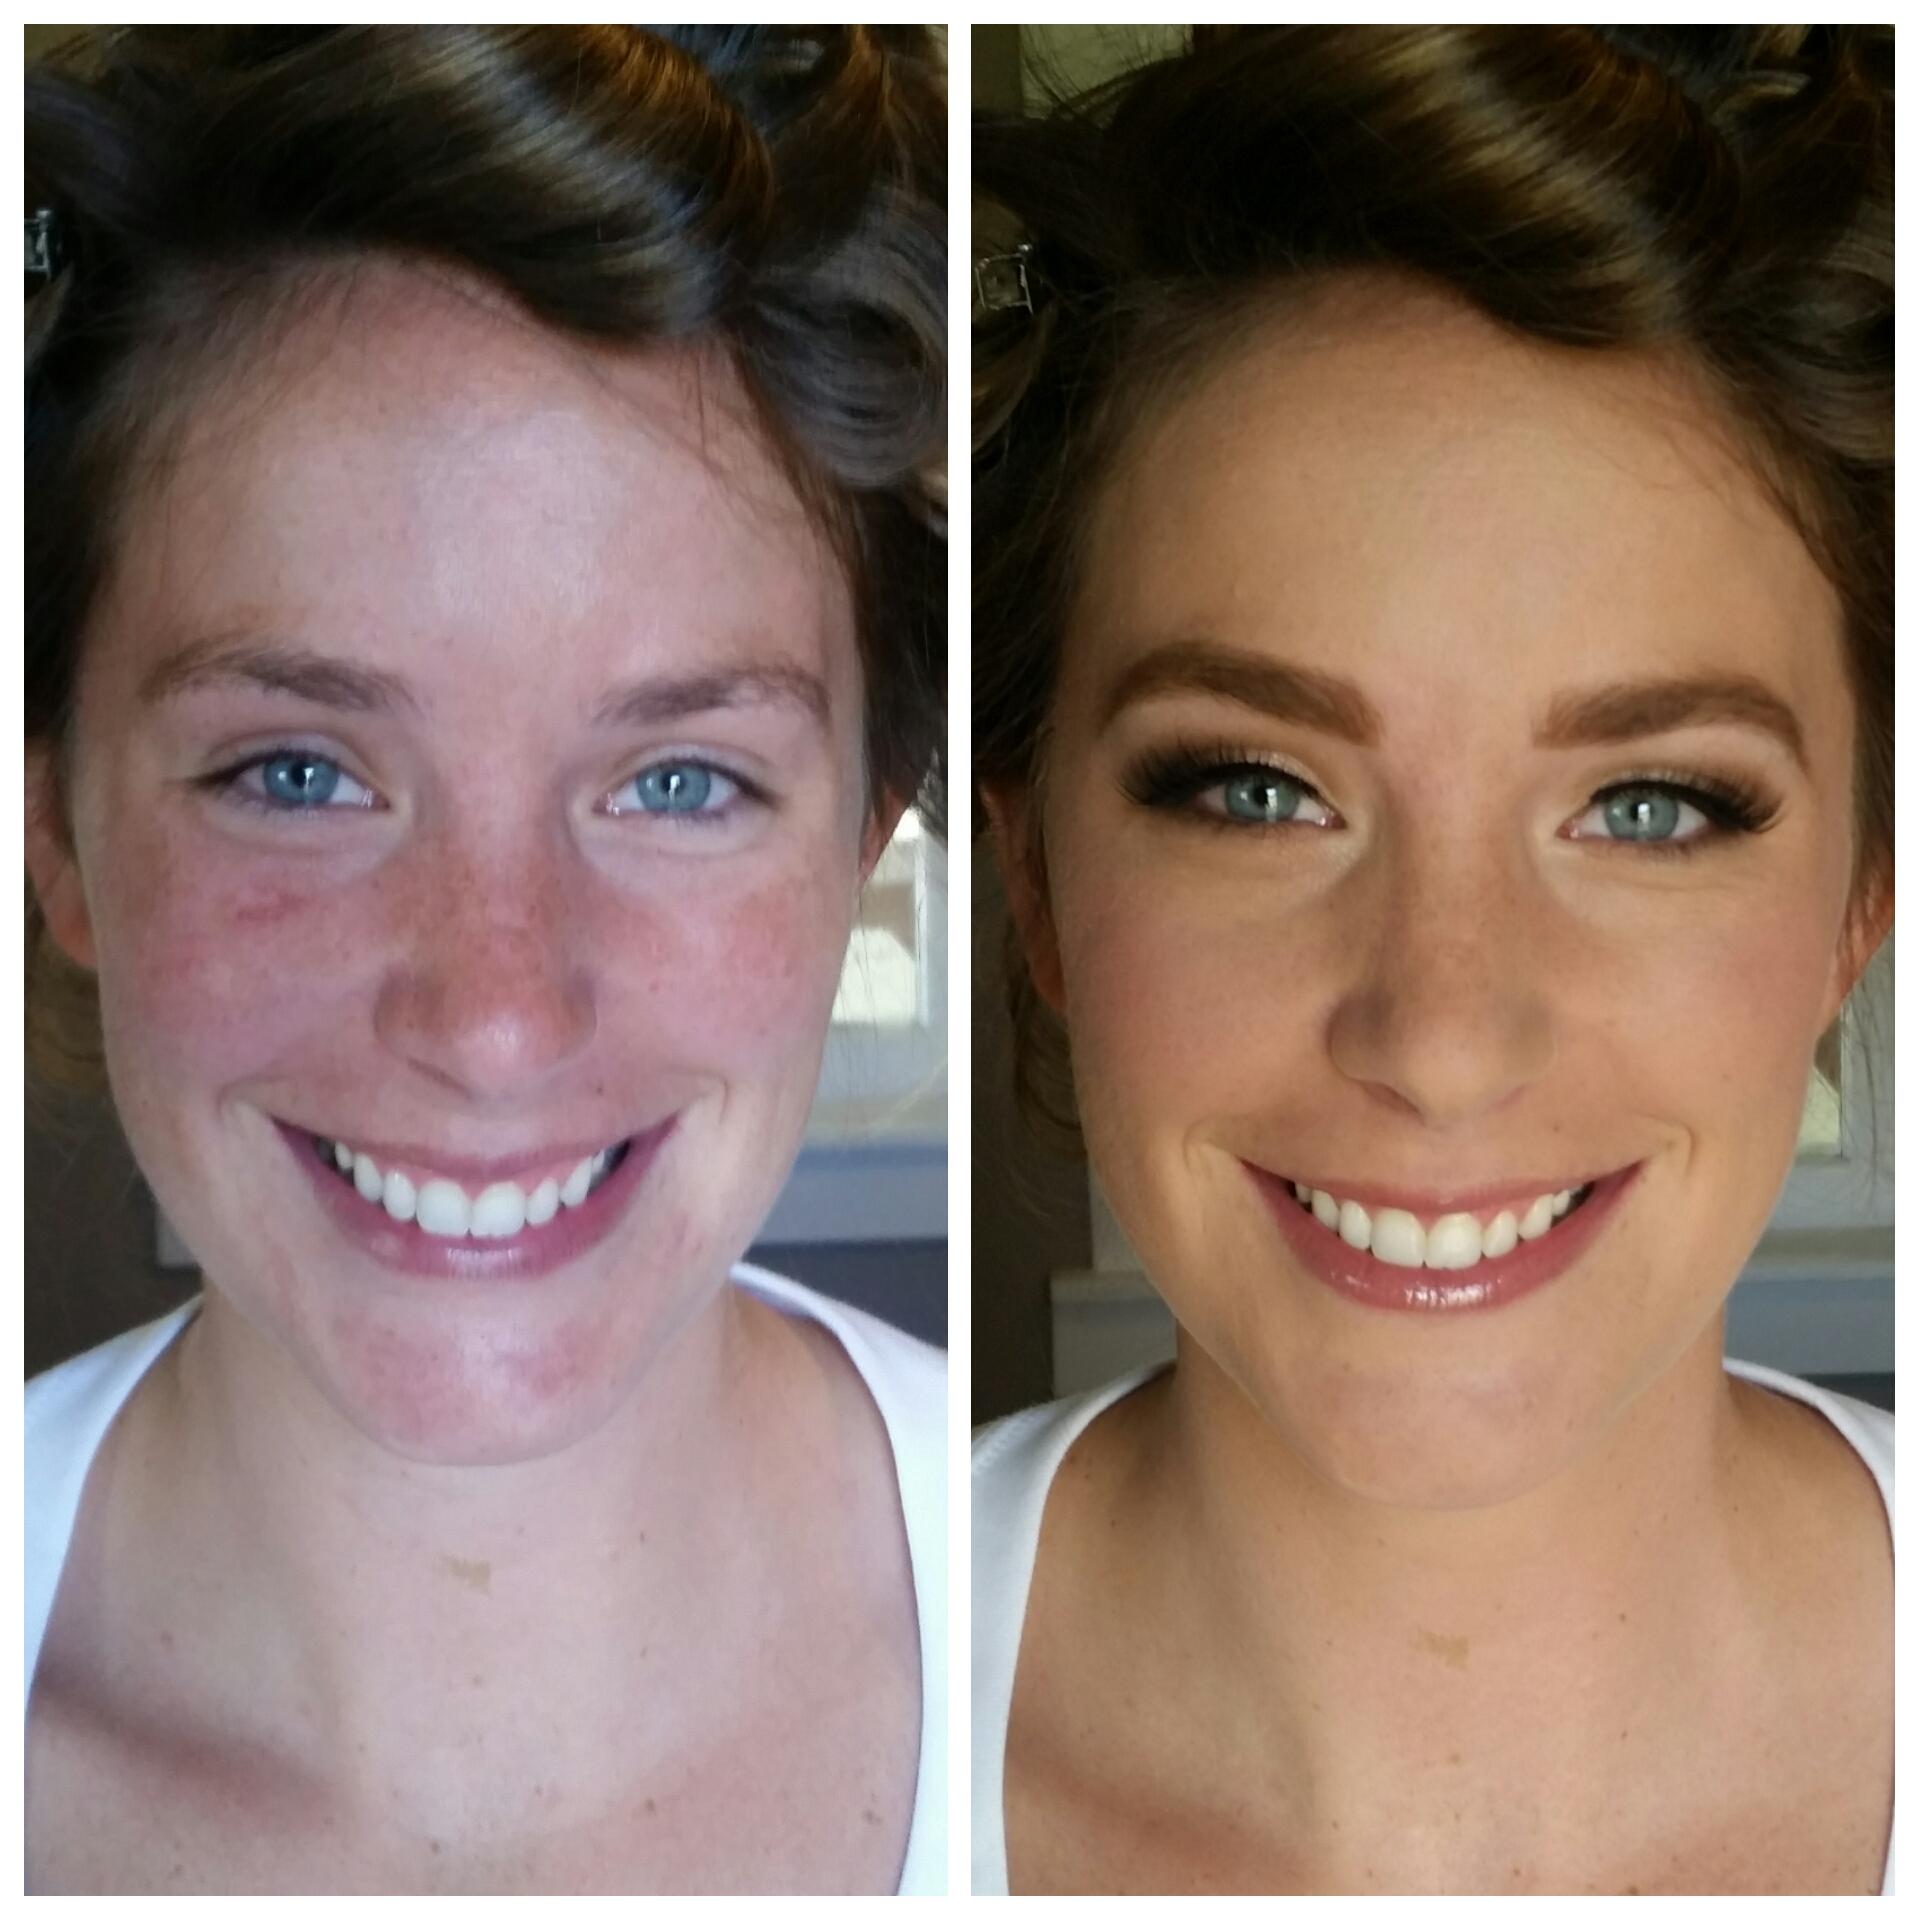 Radiant Bridal Makeup with Airbrush and Mink Lashes by Luminous Beauty Makeup Artist Blaine.jpg